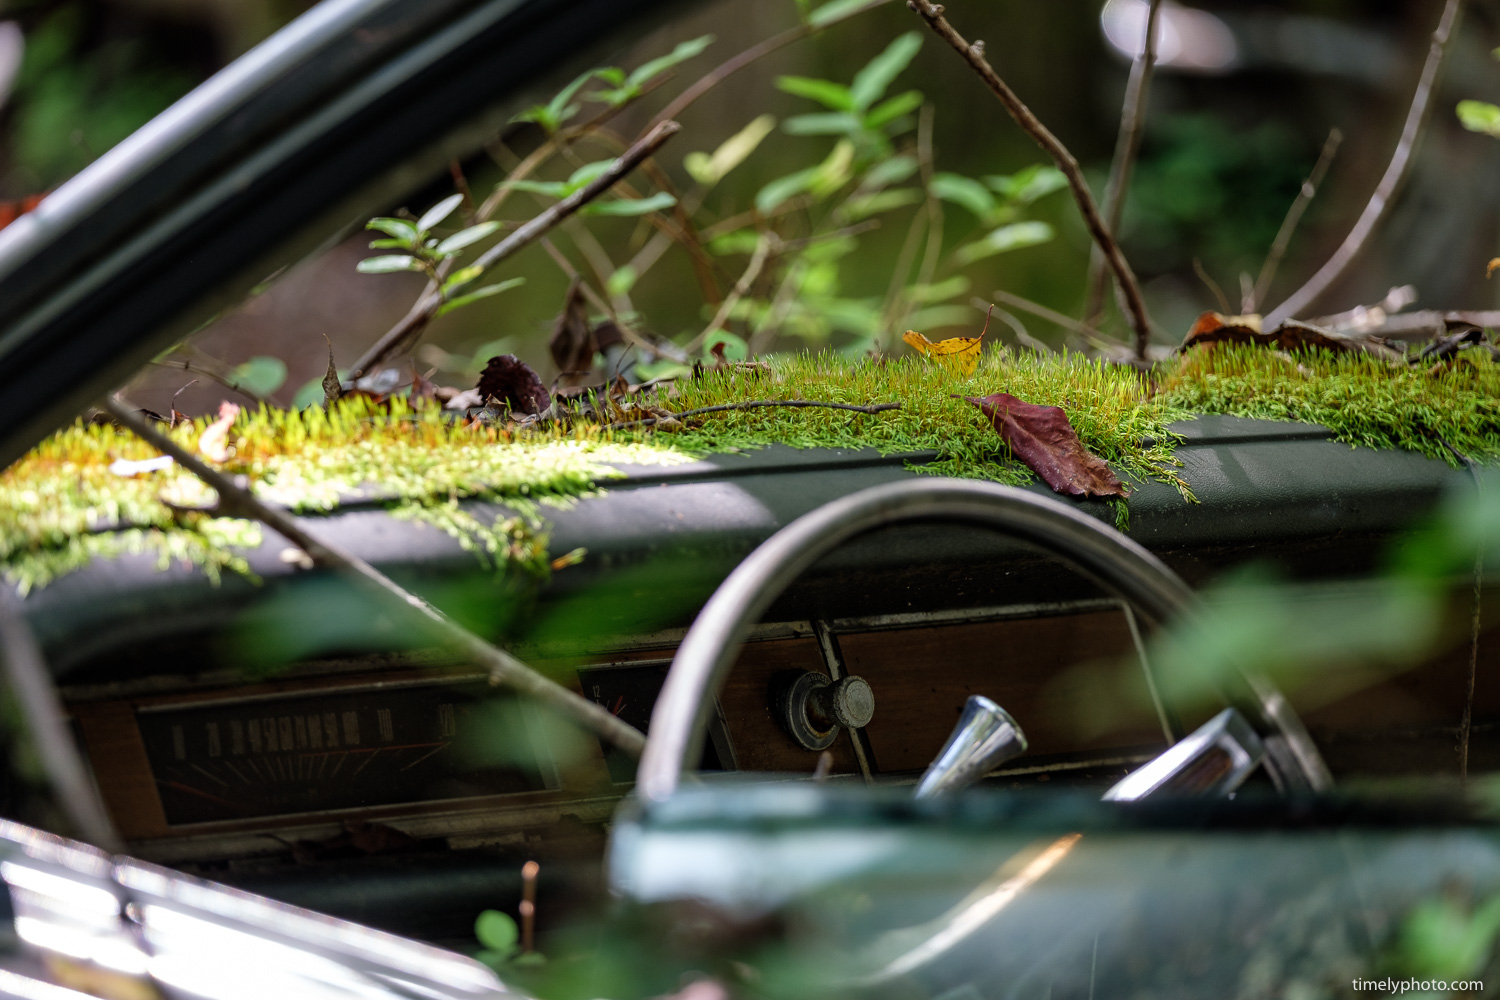 Moss Dash. Part of the Americana series by Chris Lee